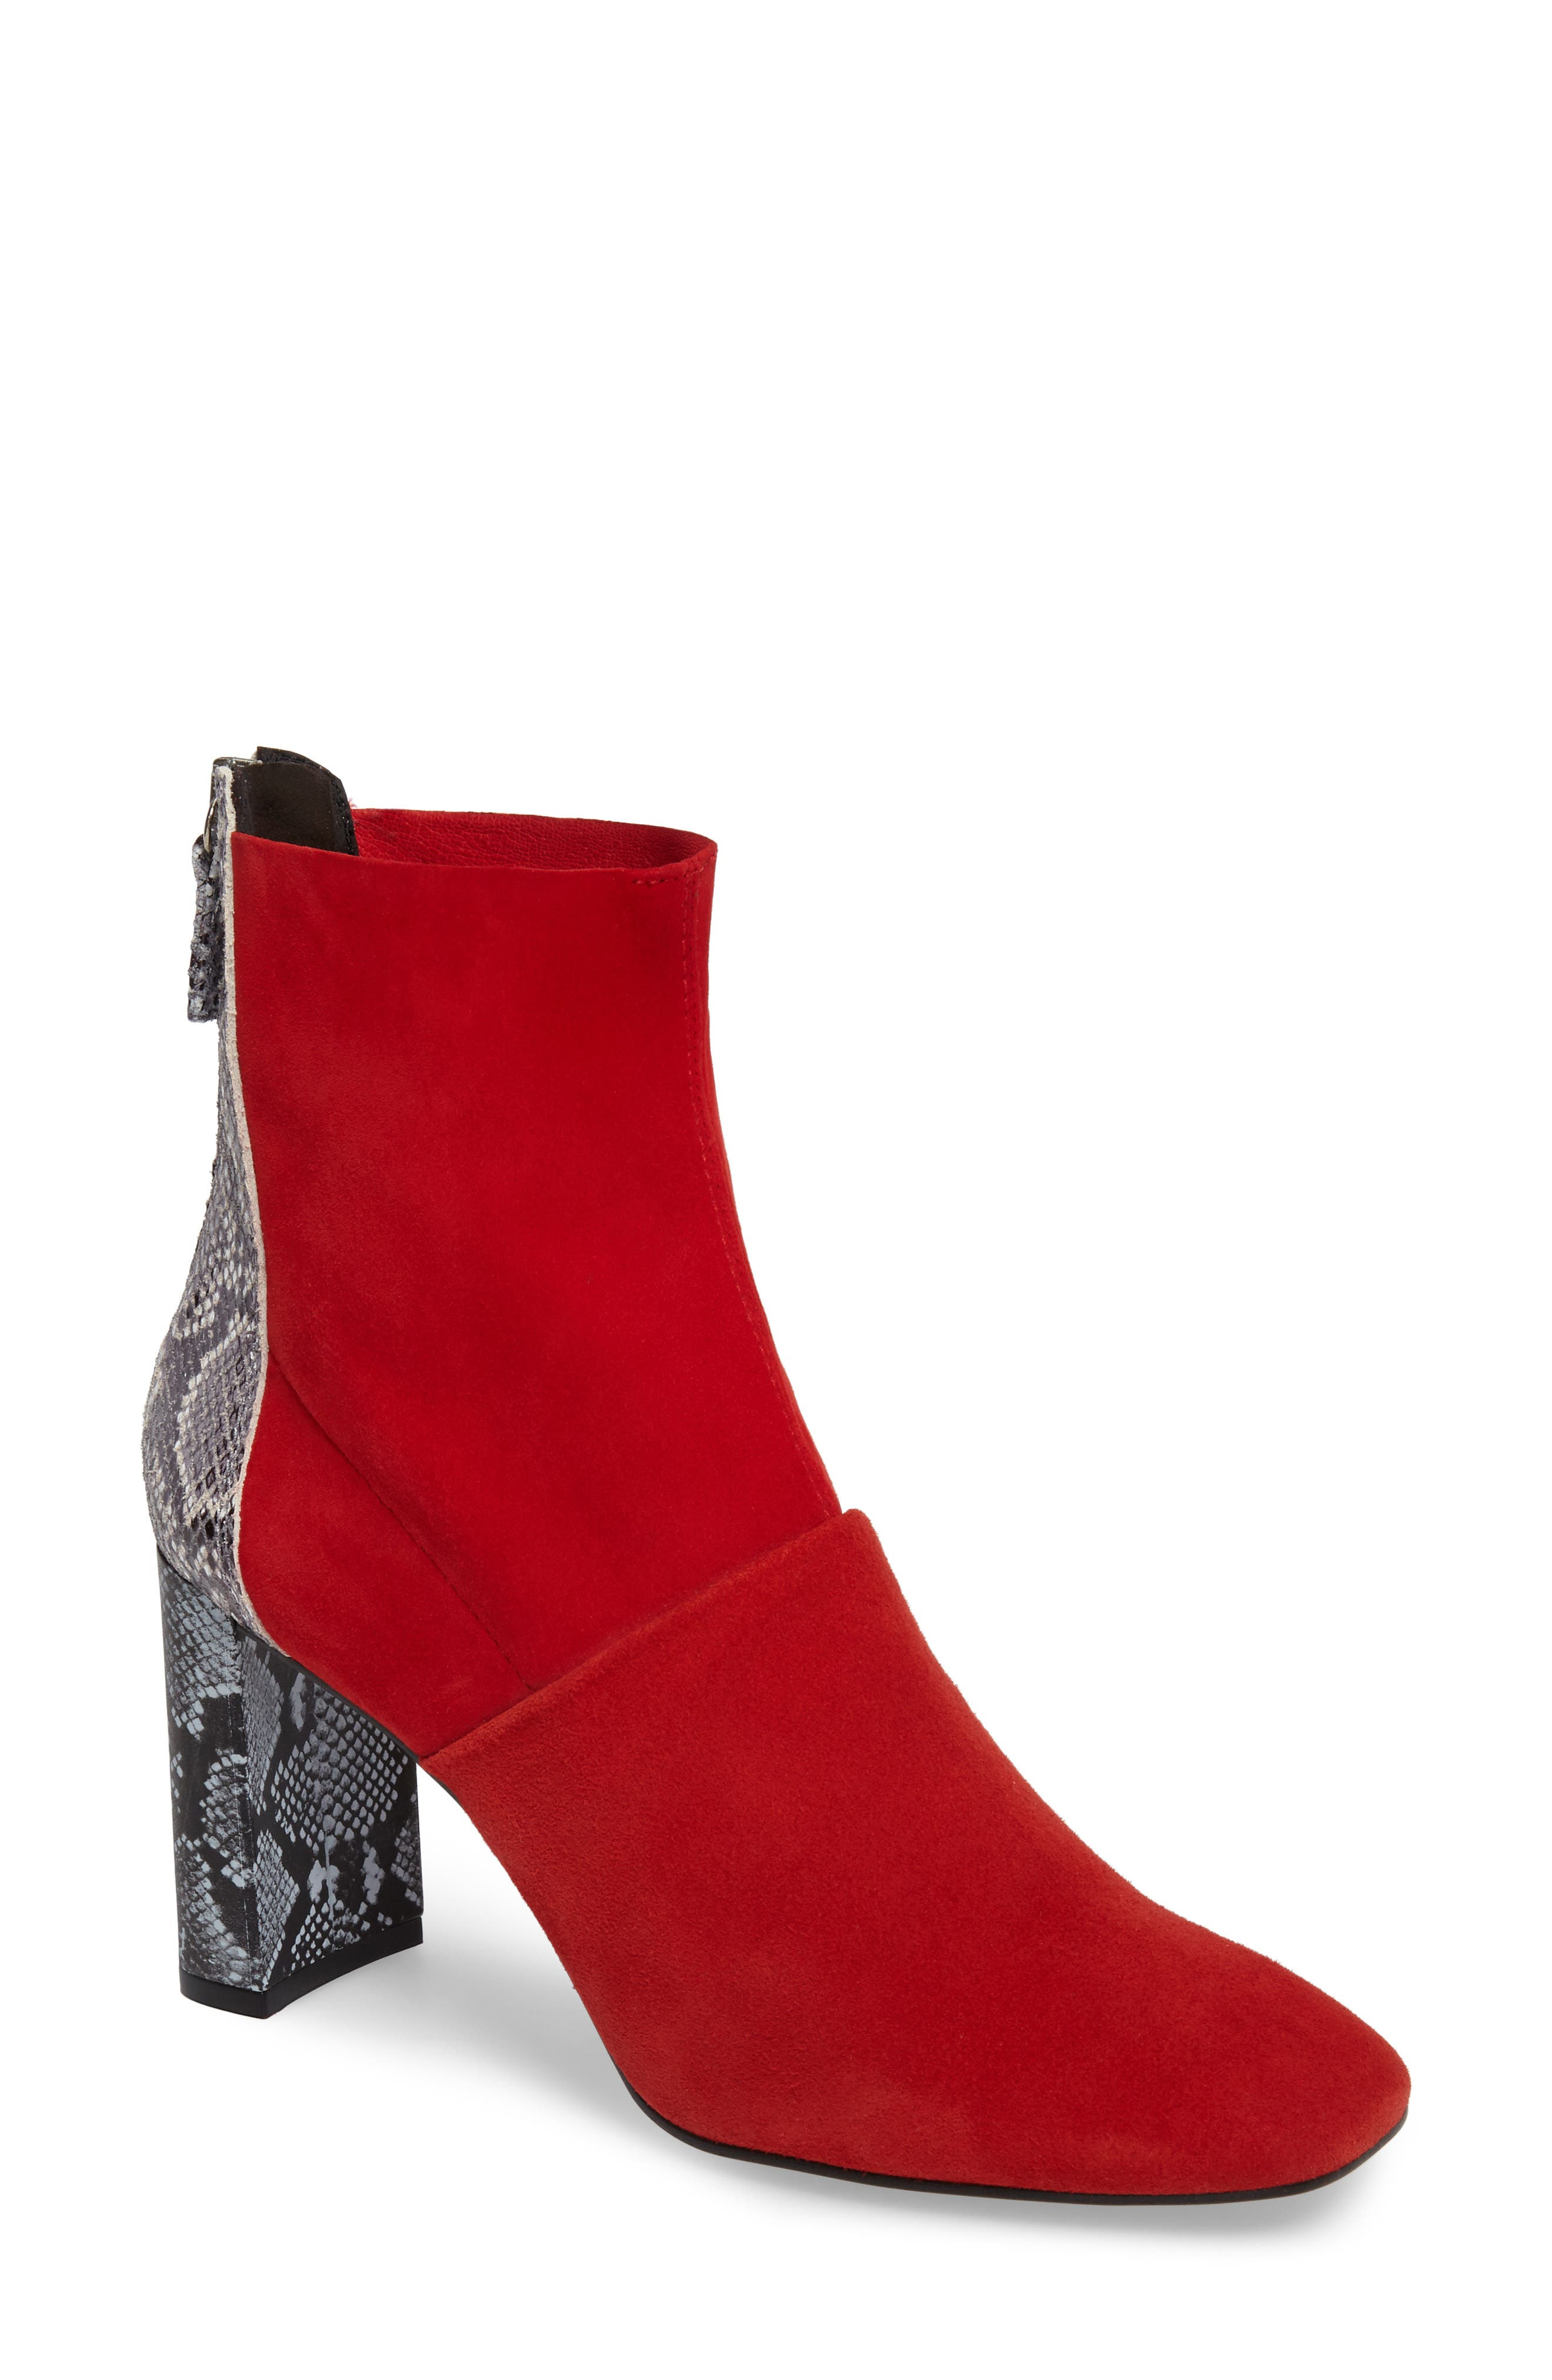 Hunk Snake-Textured Bootie,                             Main thumbnail 1, color,                             Red Multi